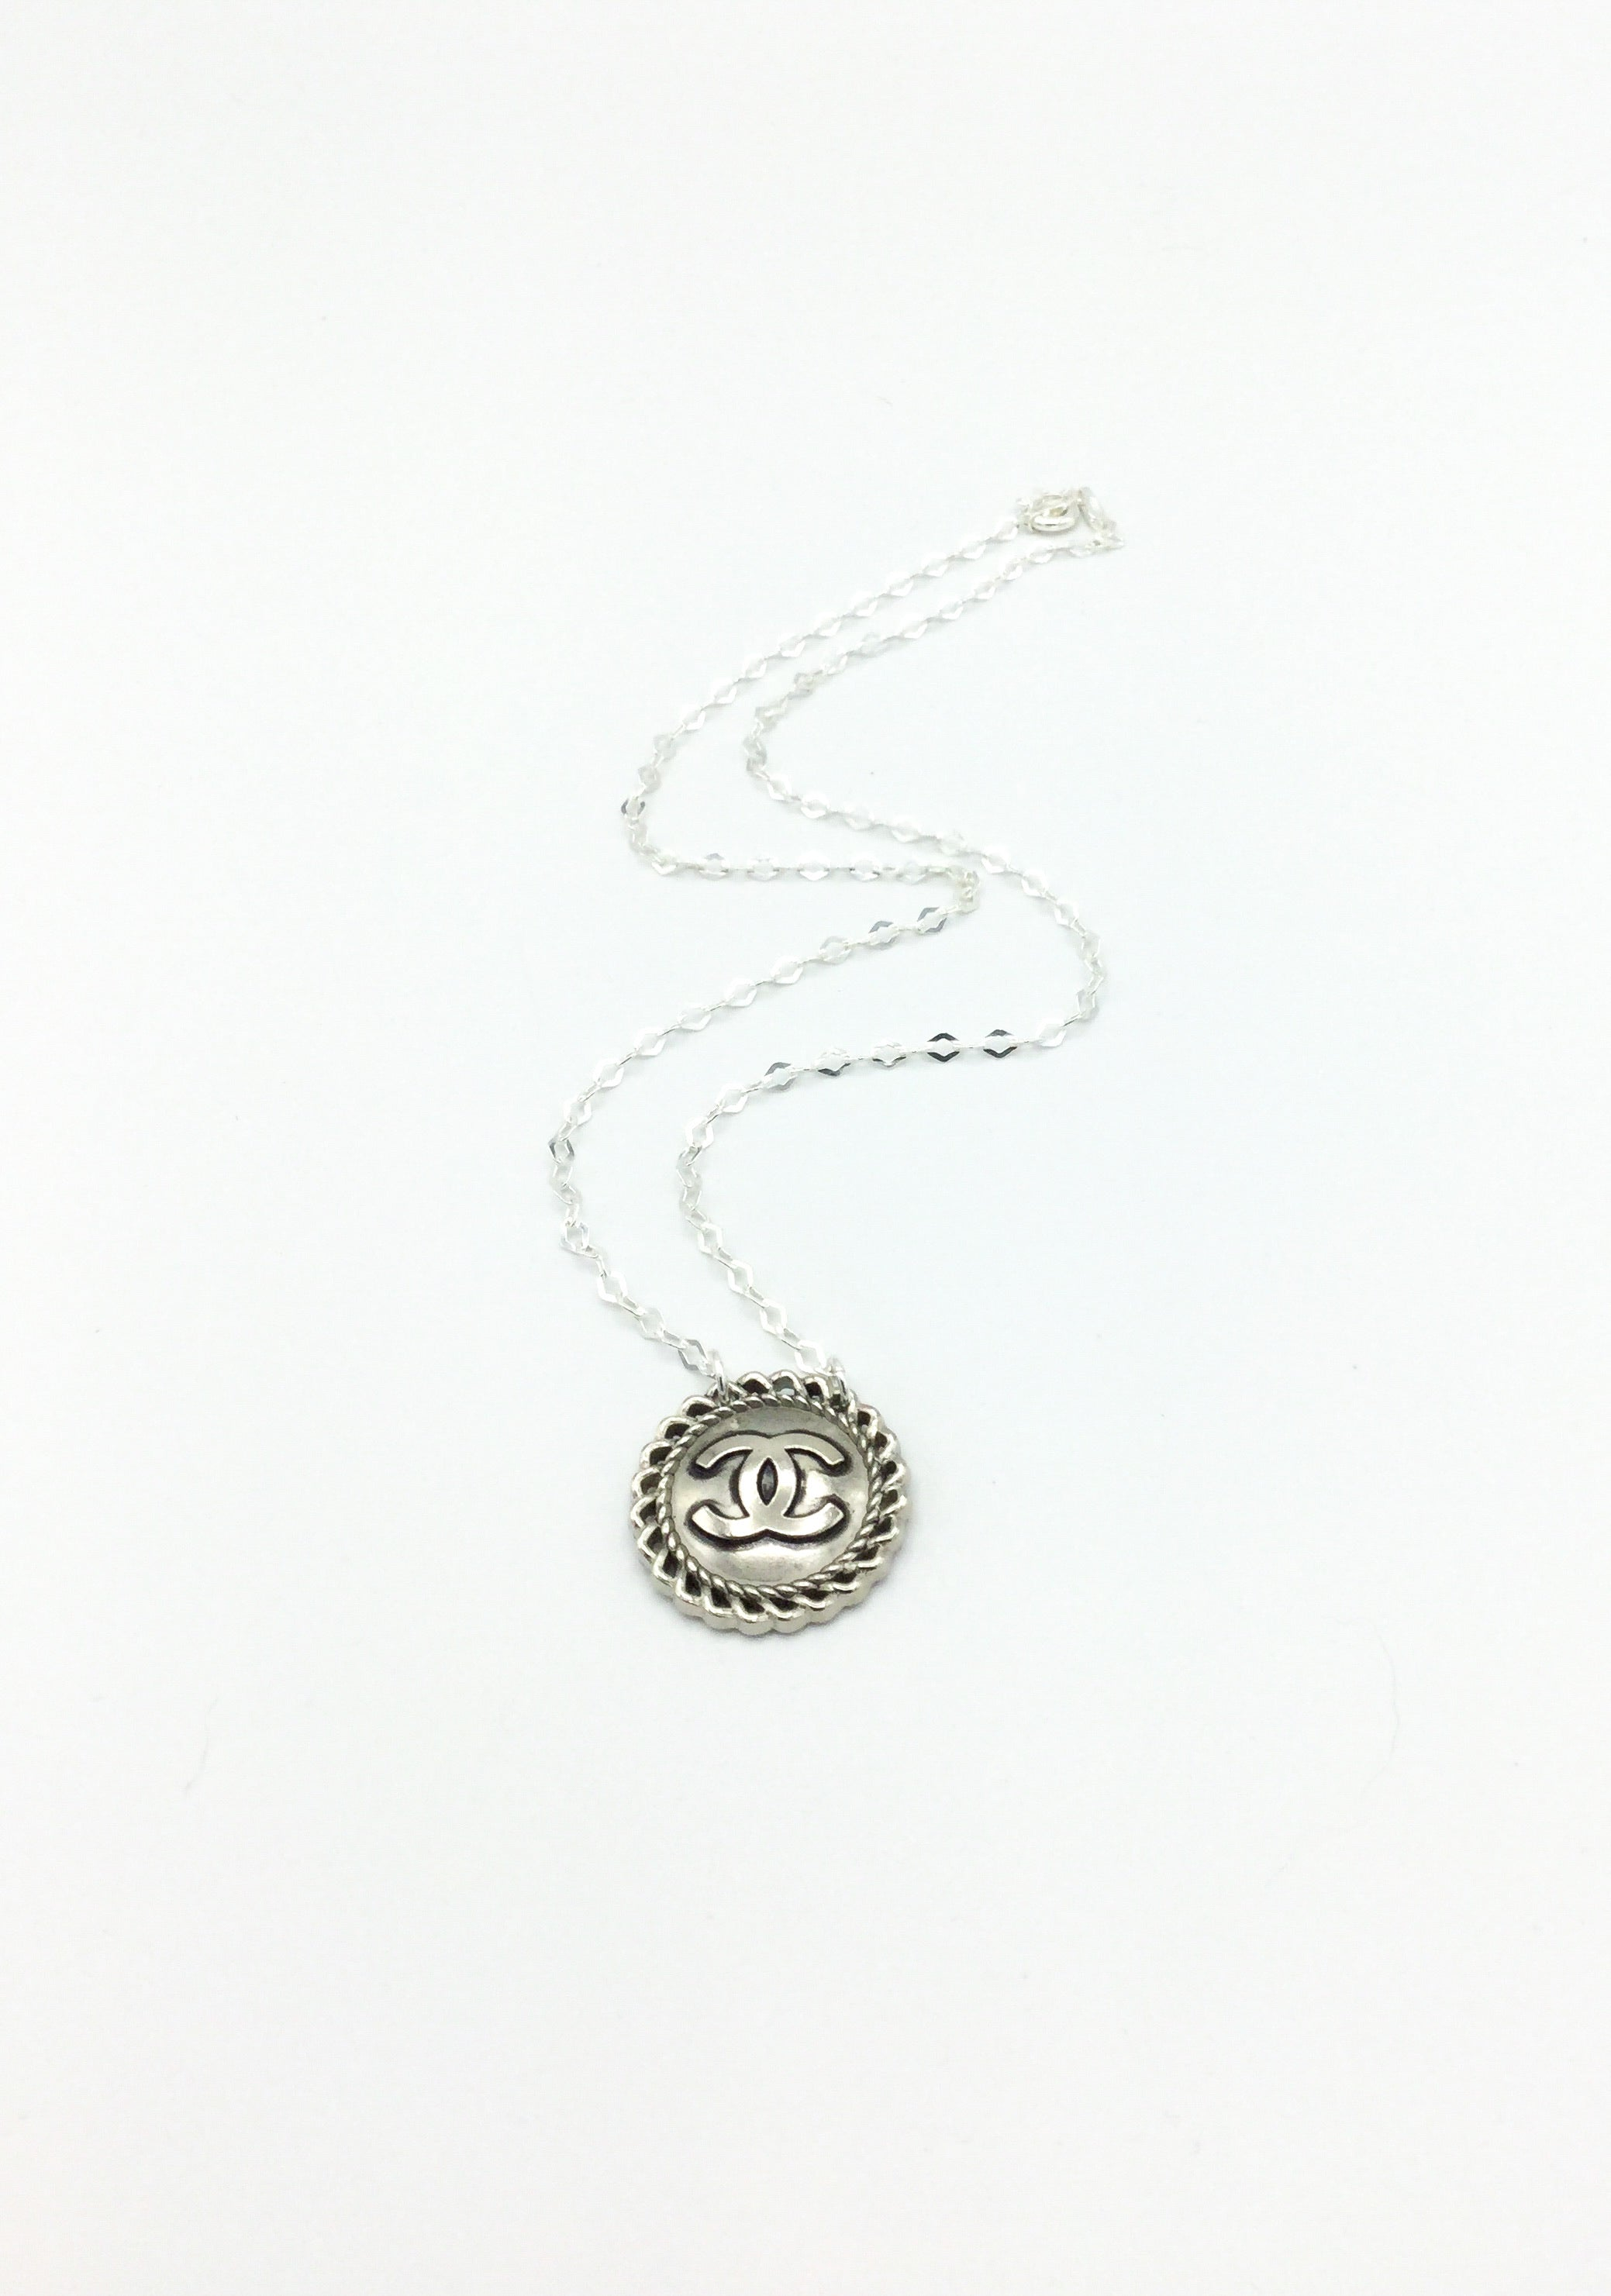 Antique-Style Designer Button Necklace